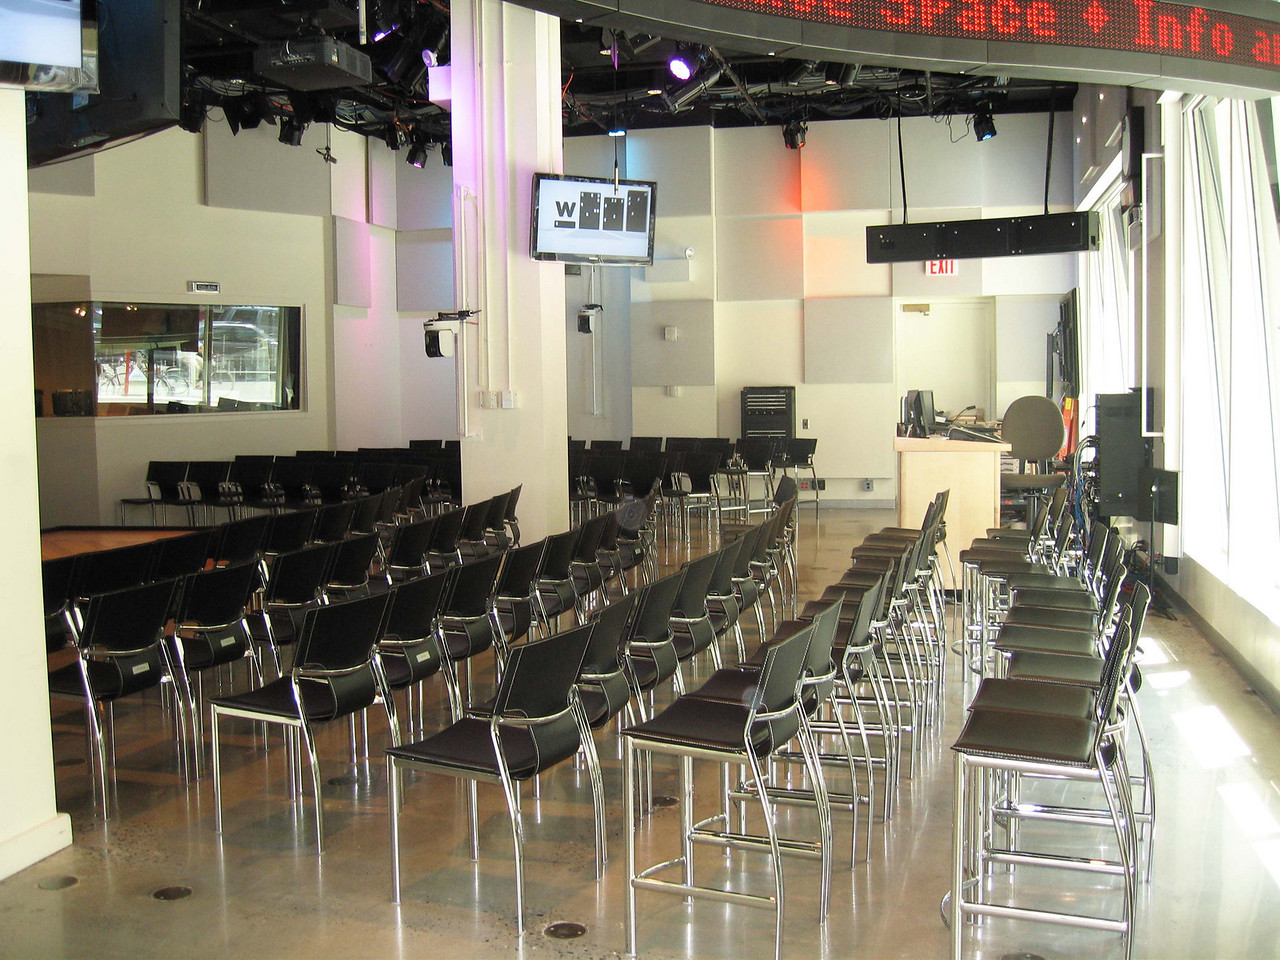 xGreene Space_Hall with chairs_2010_0008